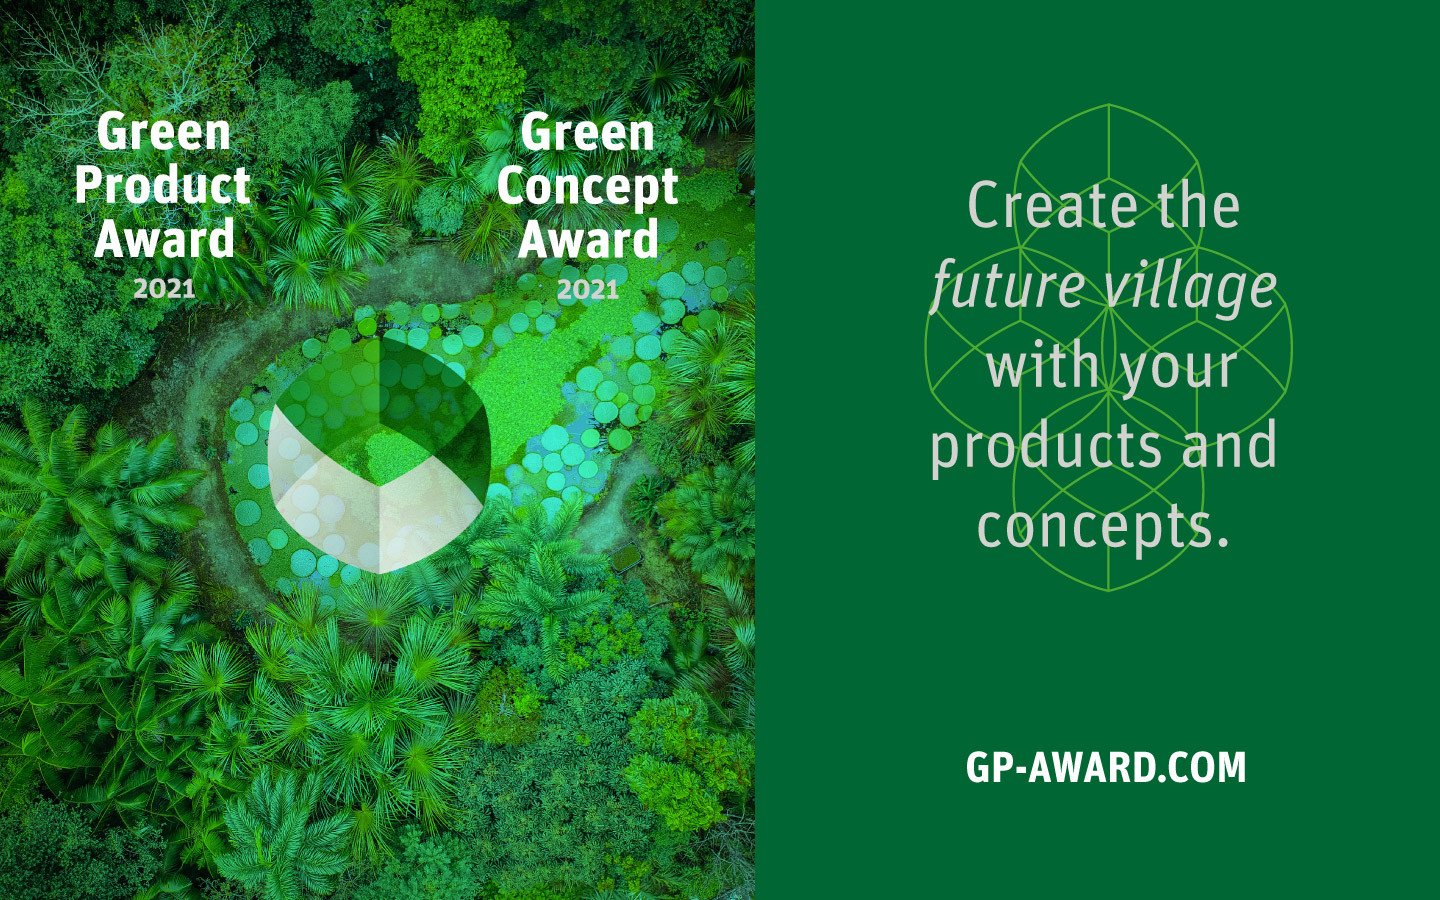 Green Product & Concept Award Call 2021